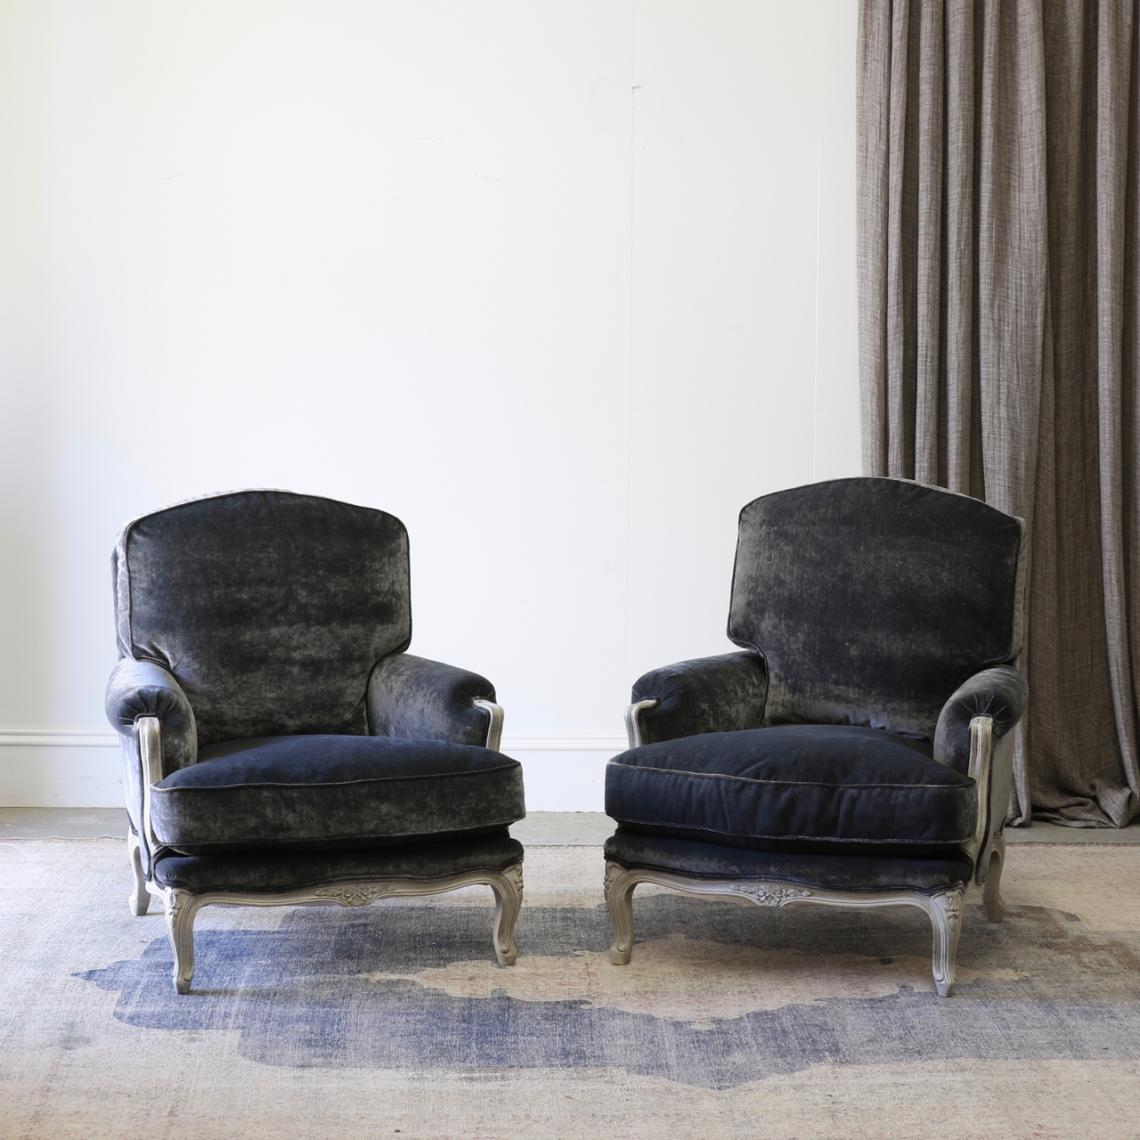 114-57 - Pair of Velvet Armchairs